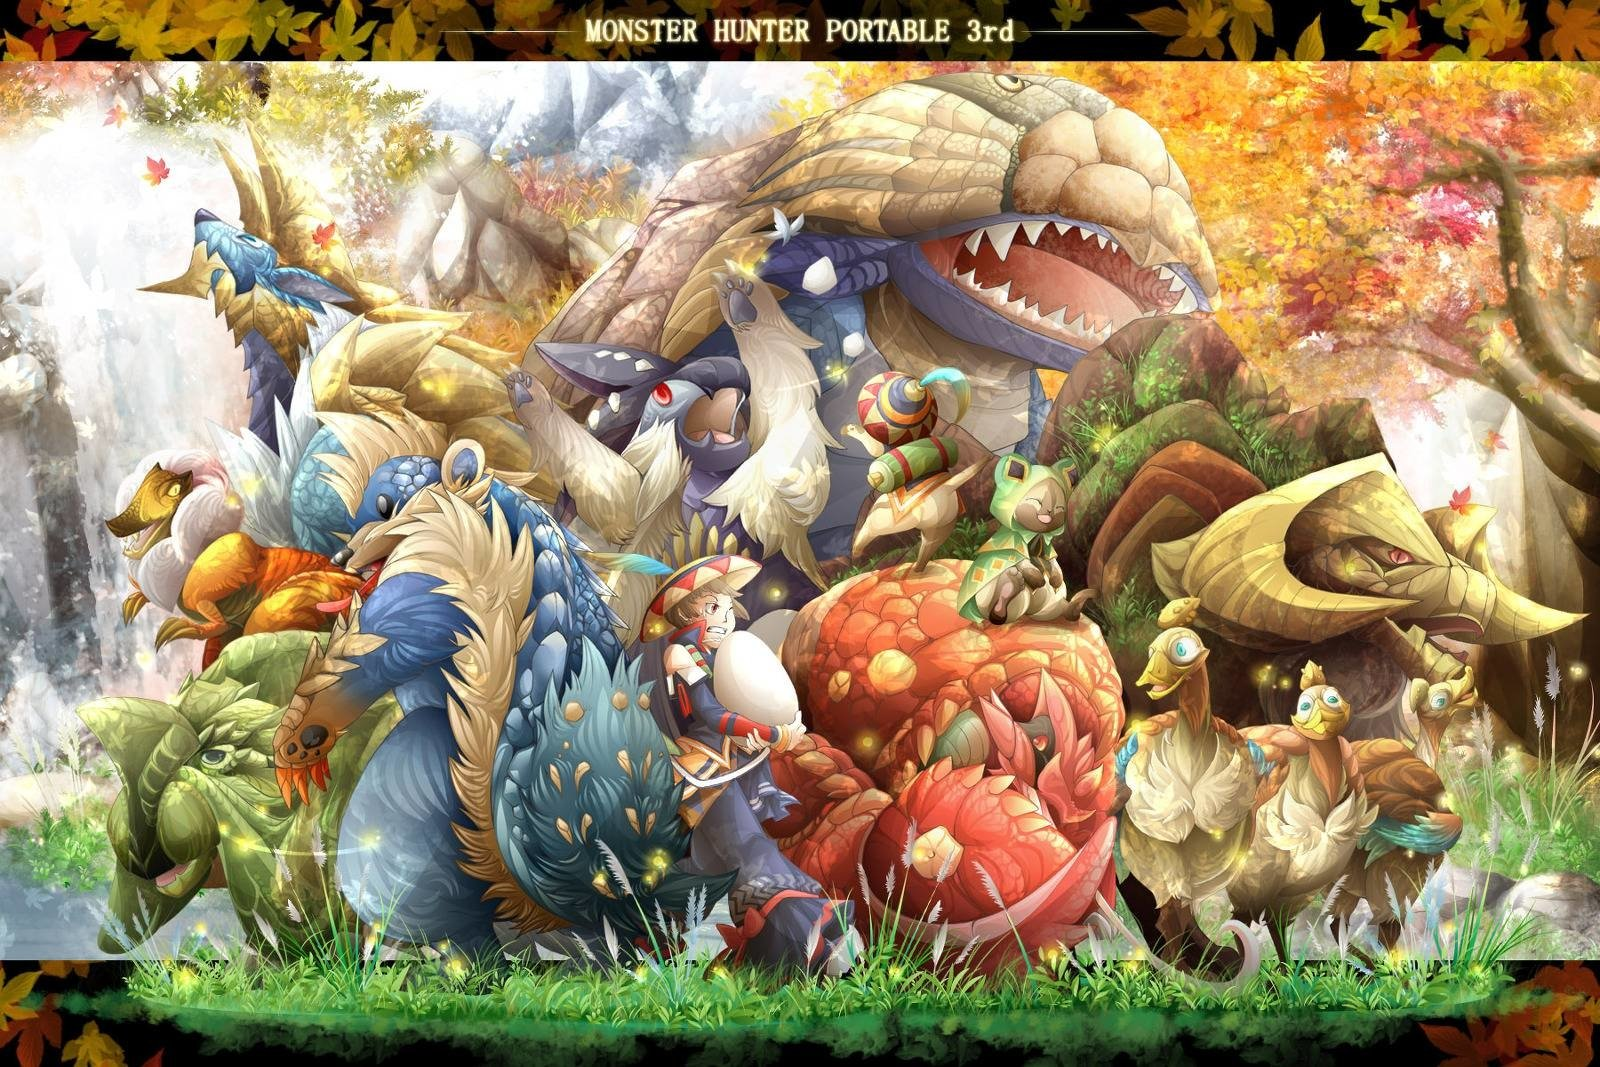 3rd Girls Wallpapers Monster Hunter Portable 3rd Wallpaper And Background Image